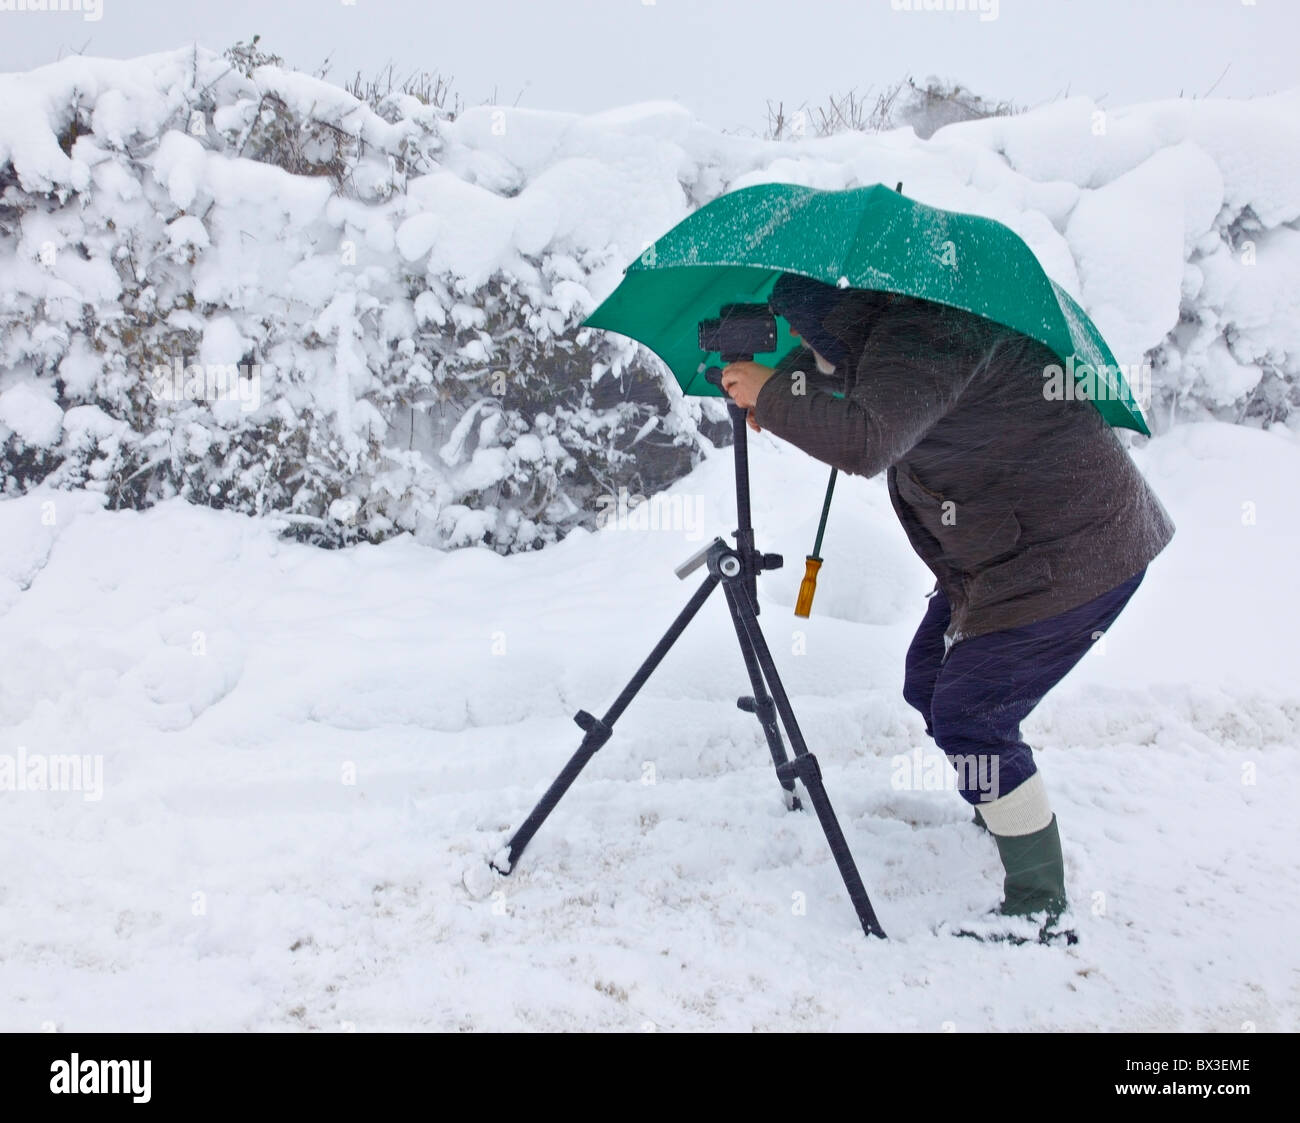 Photographer in challenging wintry conditions. - Stock Image